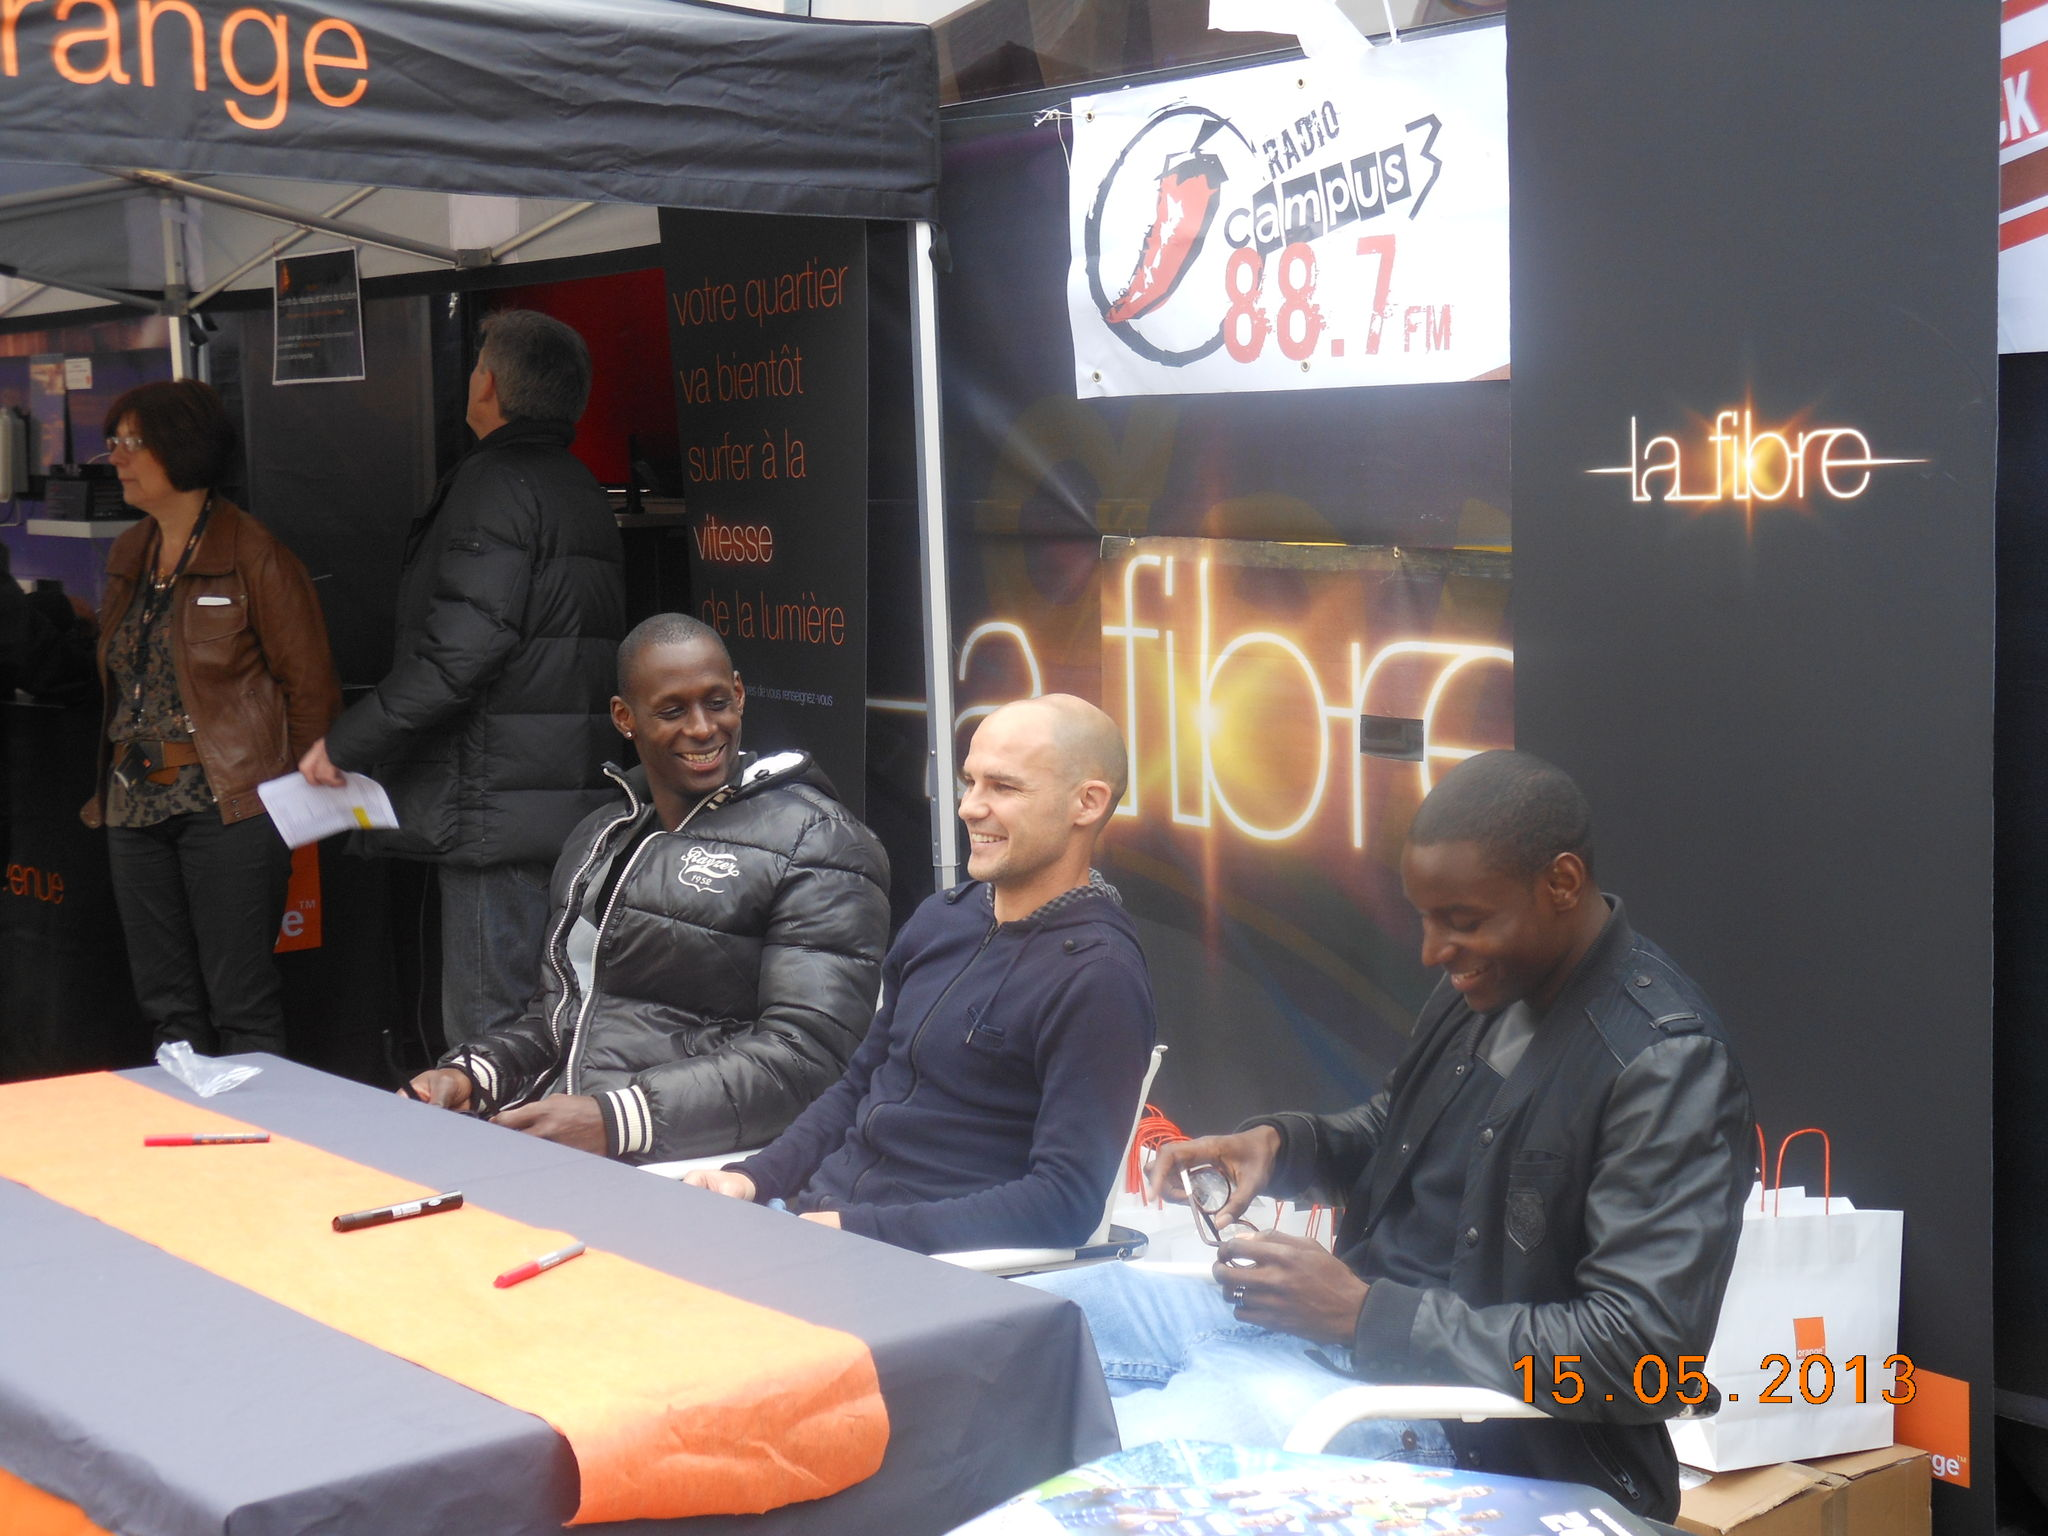 Fibre Orange avec l'ESTAC et Radio Campus3